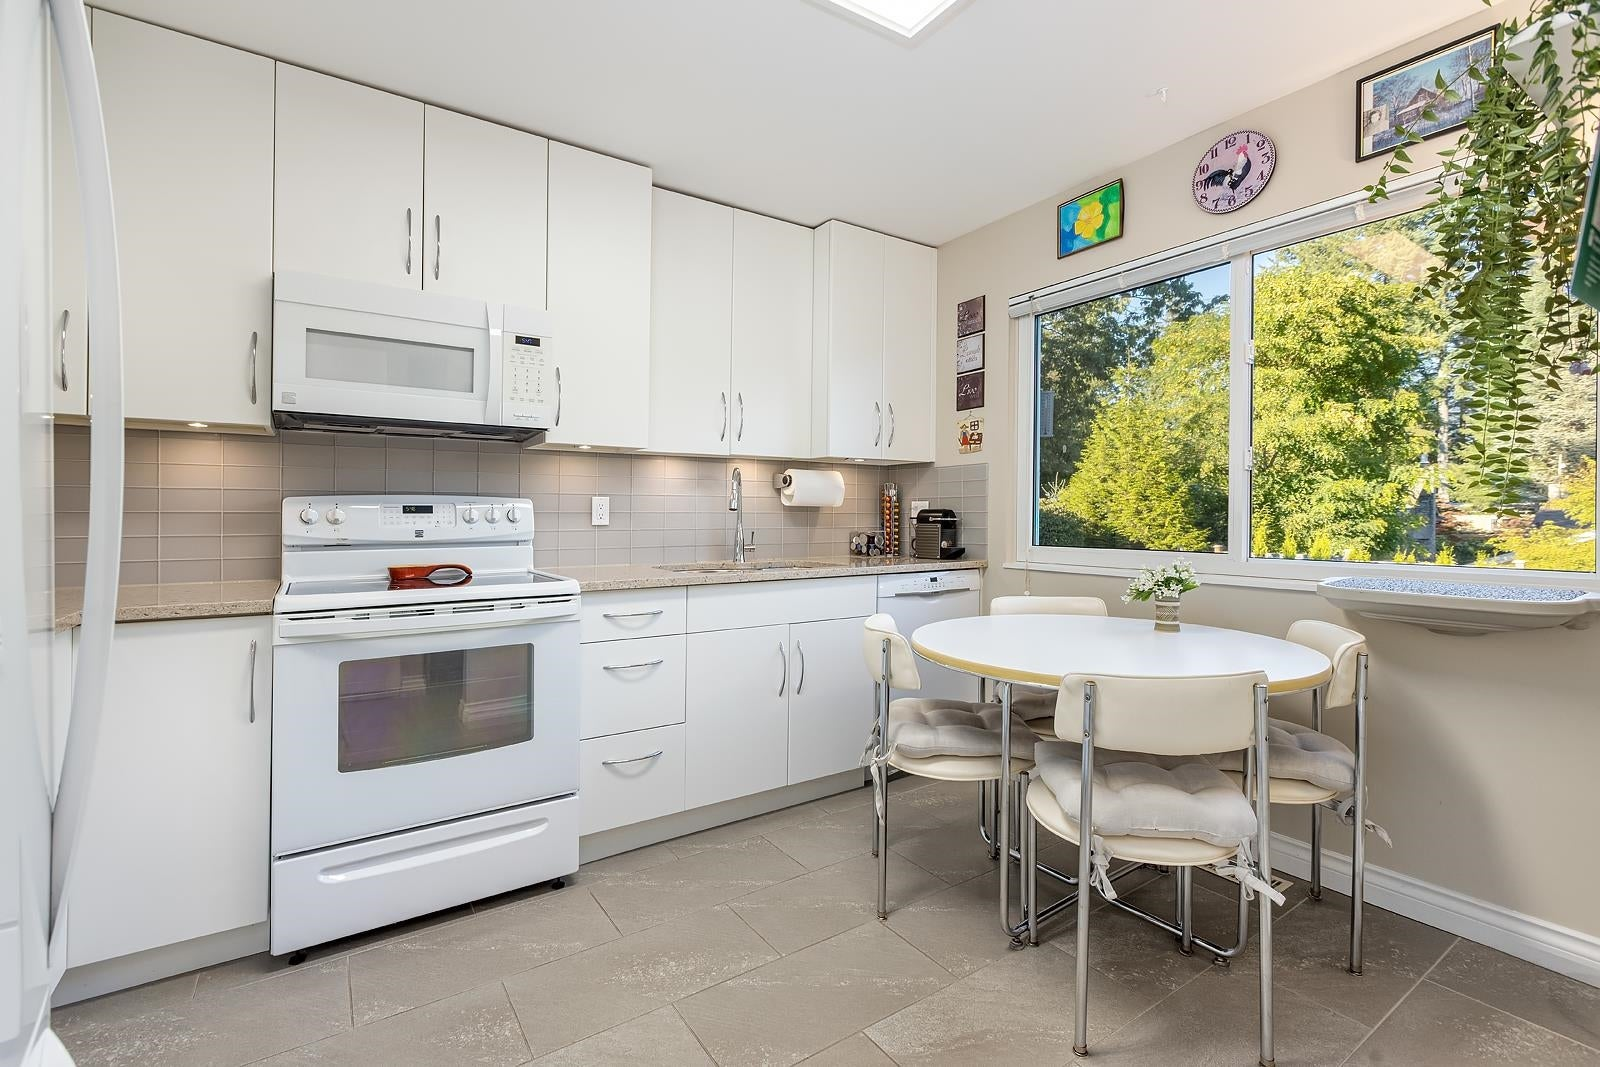 4763 HOSKINS ROAD - Lynn Valley Townhouse for sale, 3 Bedrooms (R2617725) - #3